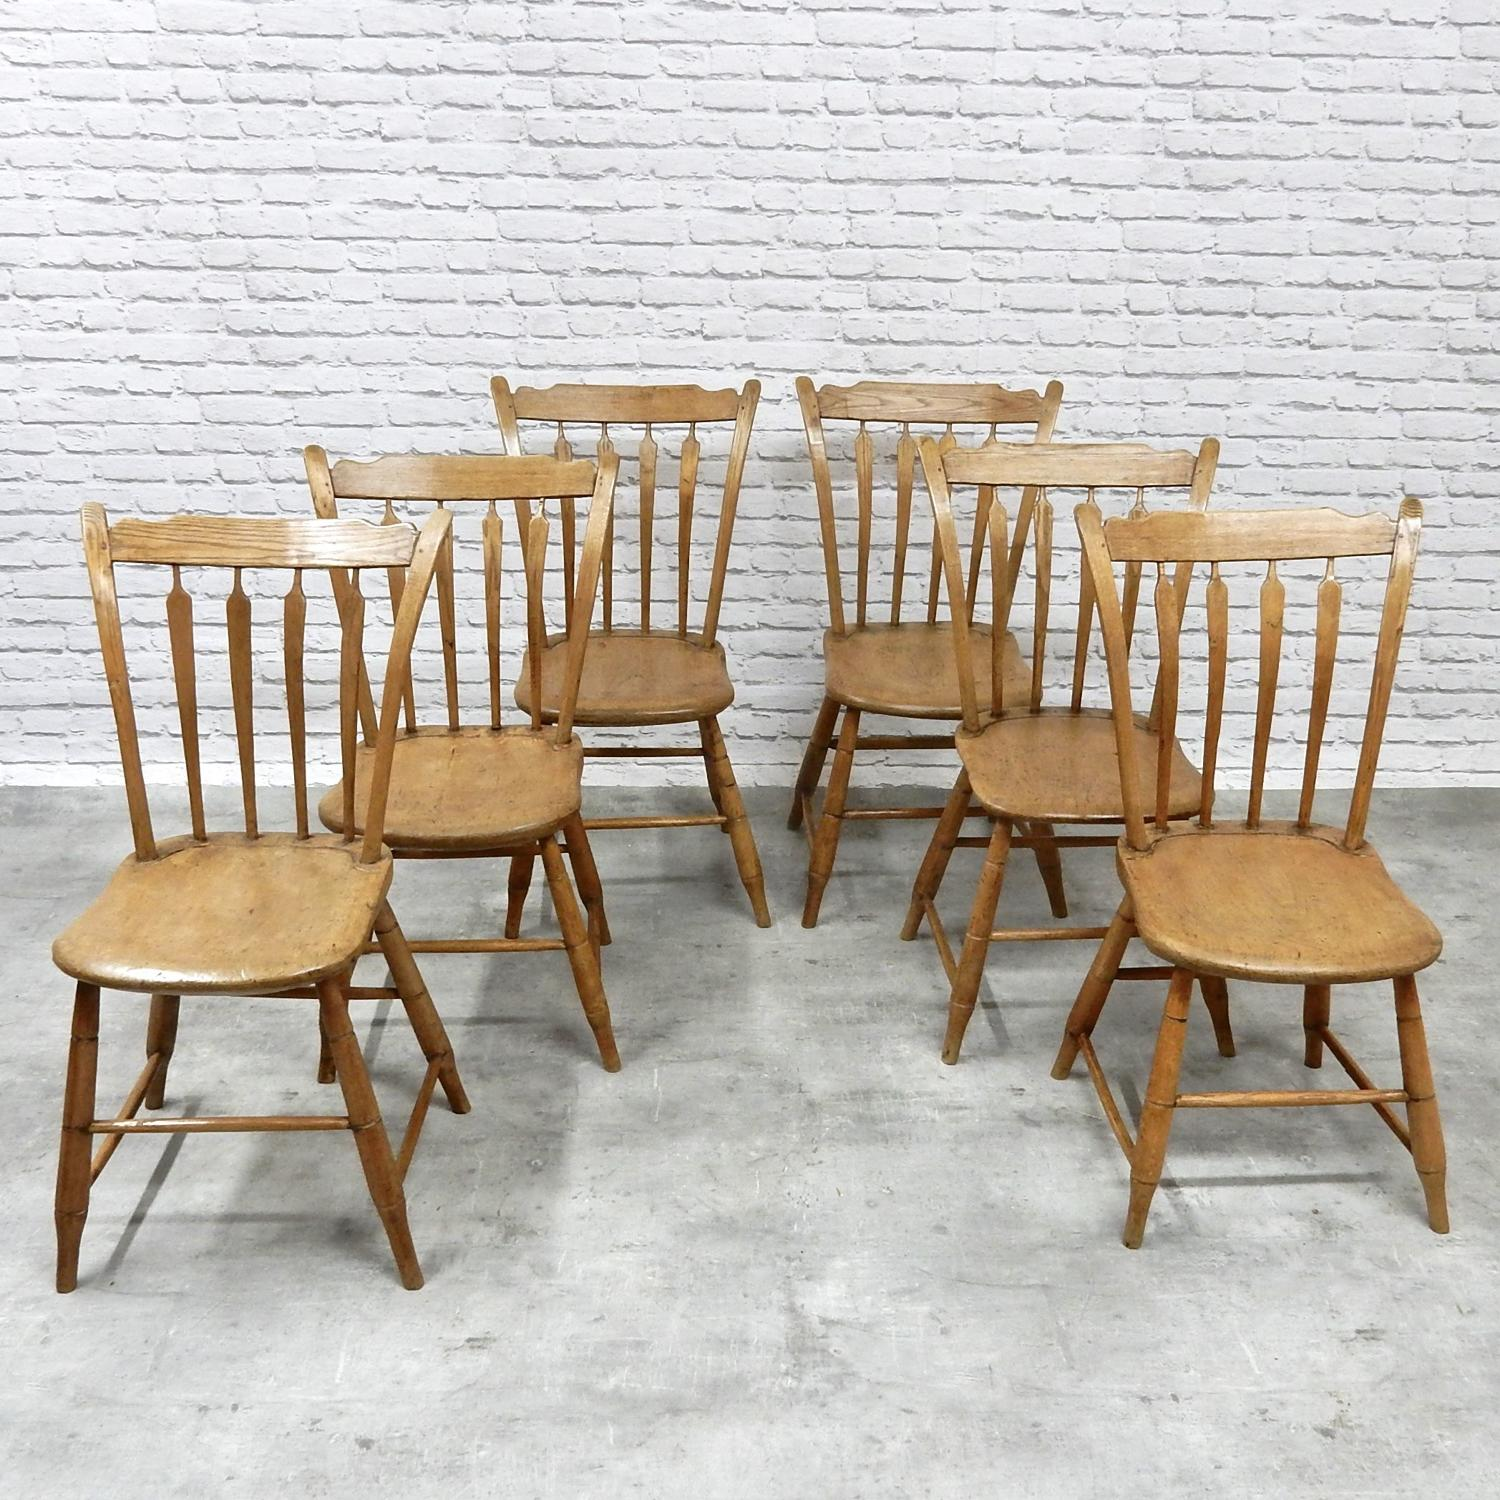 C19th American Chairs x6